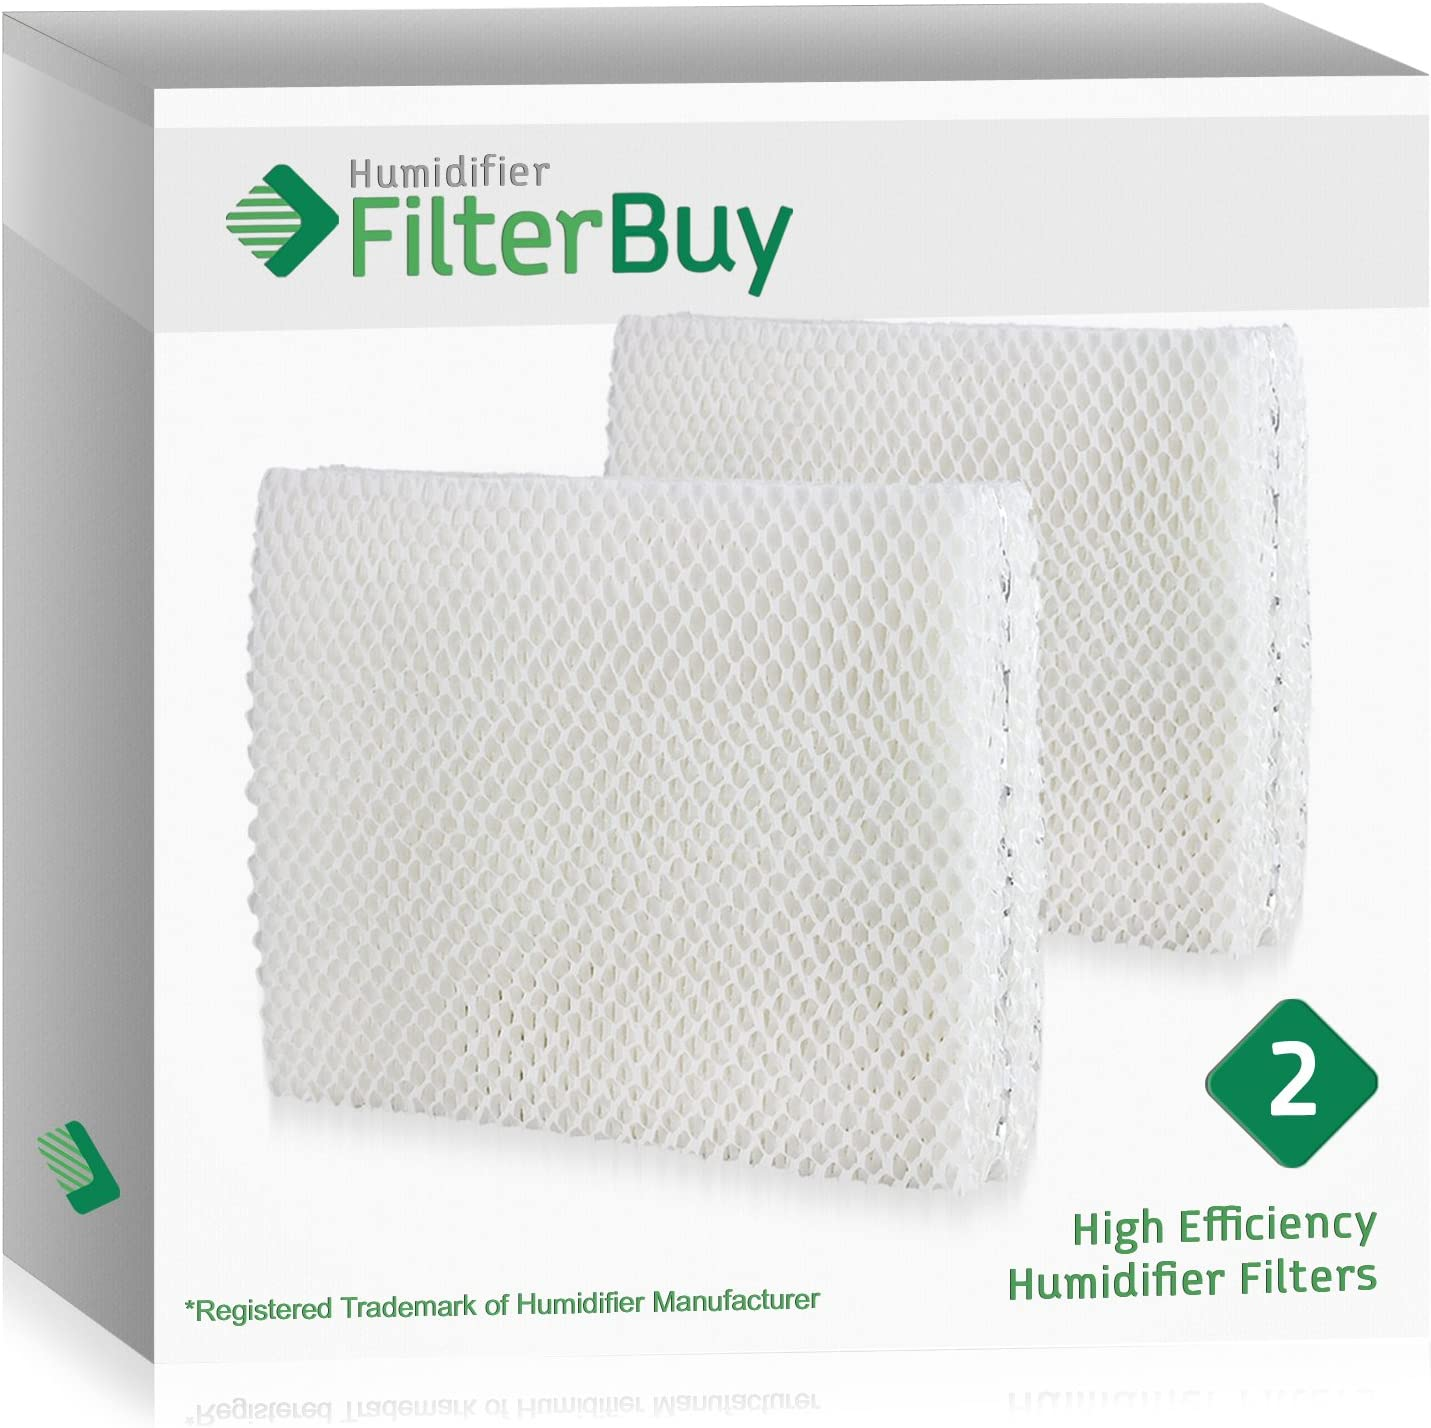 Vornado MD1 0001, MD1 0002, MD1 1002 Humidifier Wick Filter. Designed by FilterBuy to fit all Vornado Evaporative Humidifiers. Pack of 2 Filters.